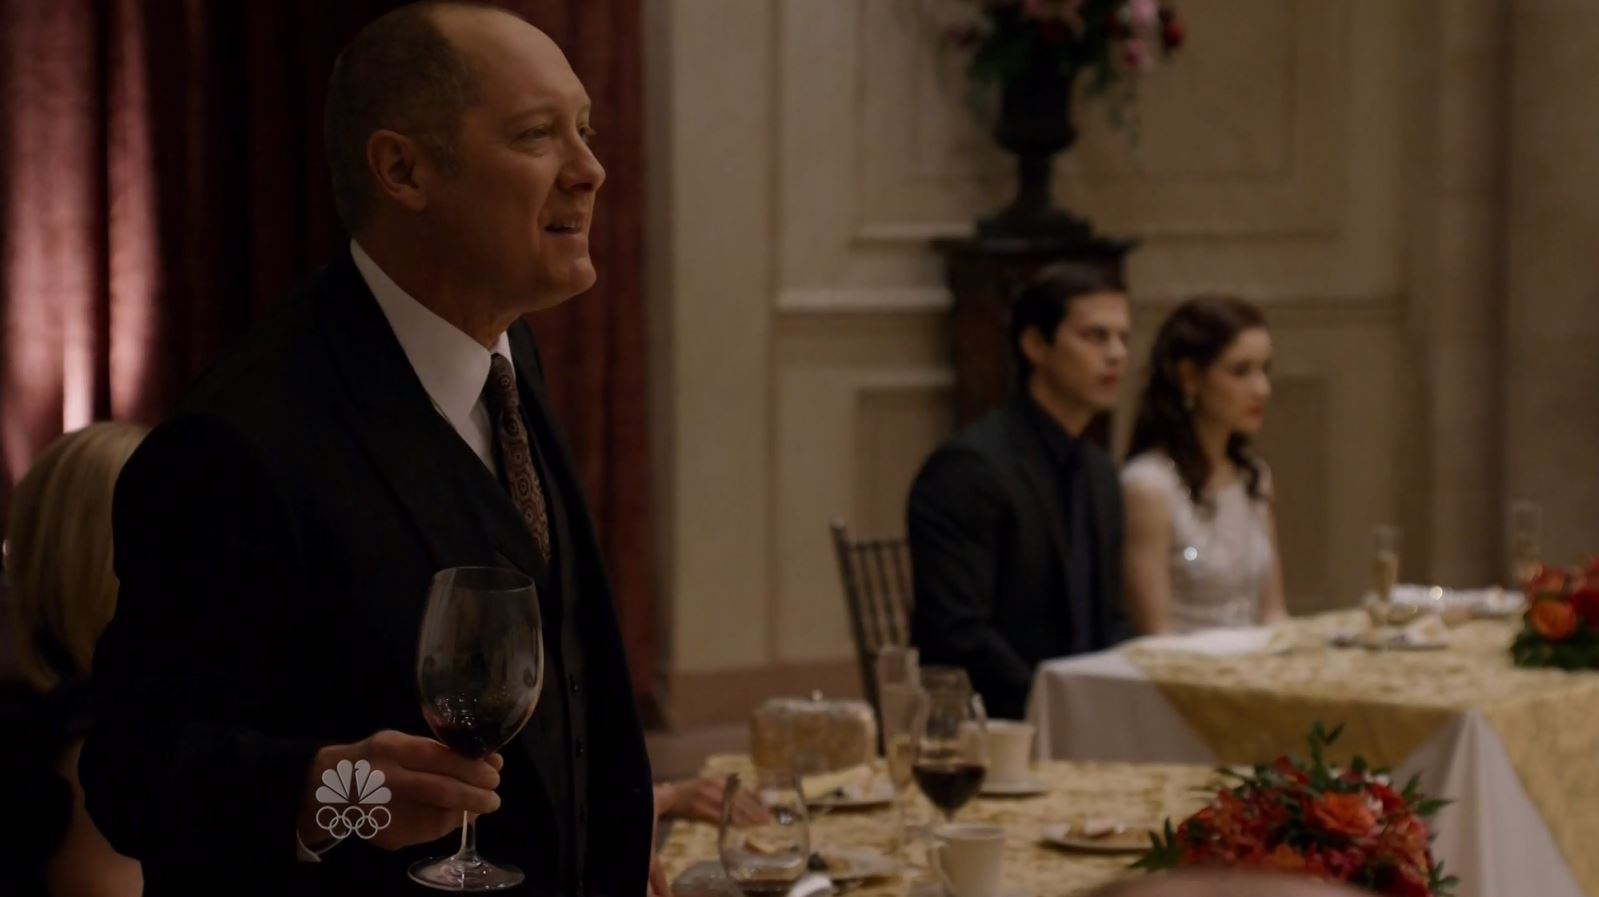 Reddington talking about his favorite telenovella. The Blacklist S3Ep13 Alistair Pitt Review